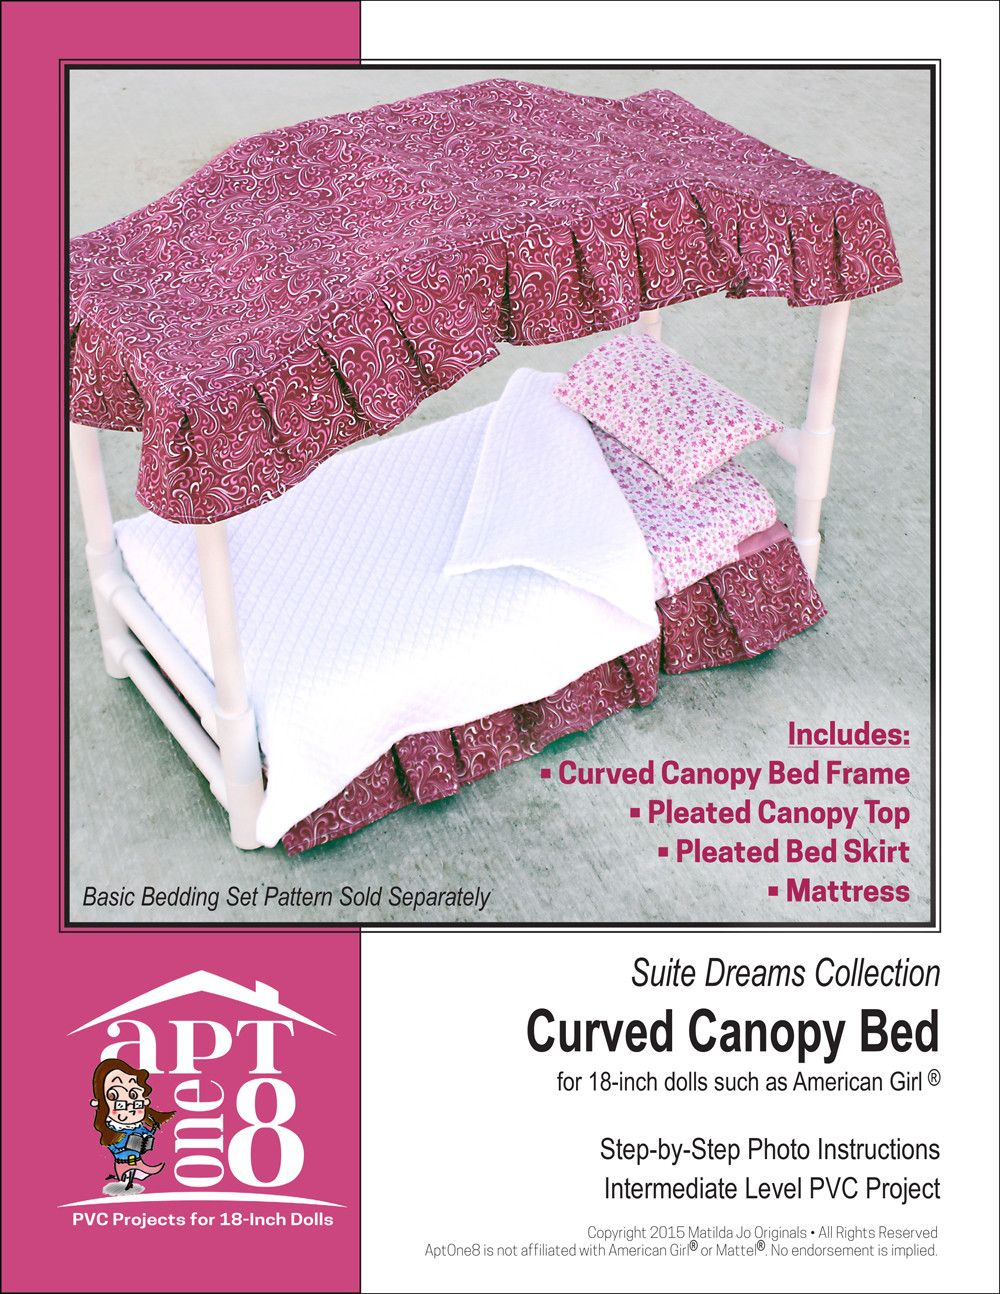 curved canopy bed on suite dreams collection curved canopy bed pvc pattern for 18 inch dolls 18 inch doll accessories canopy bed pvc projects pinterest